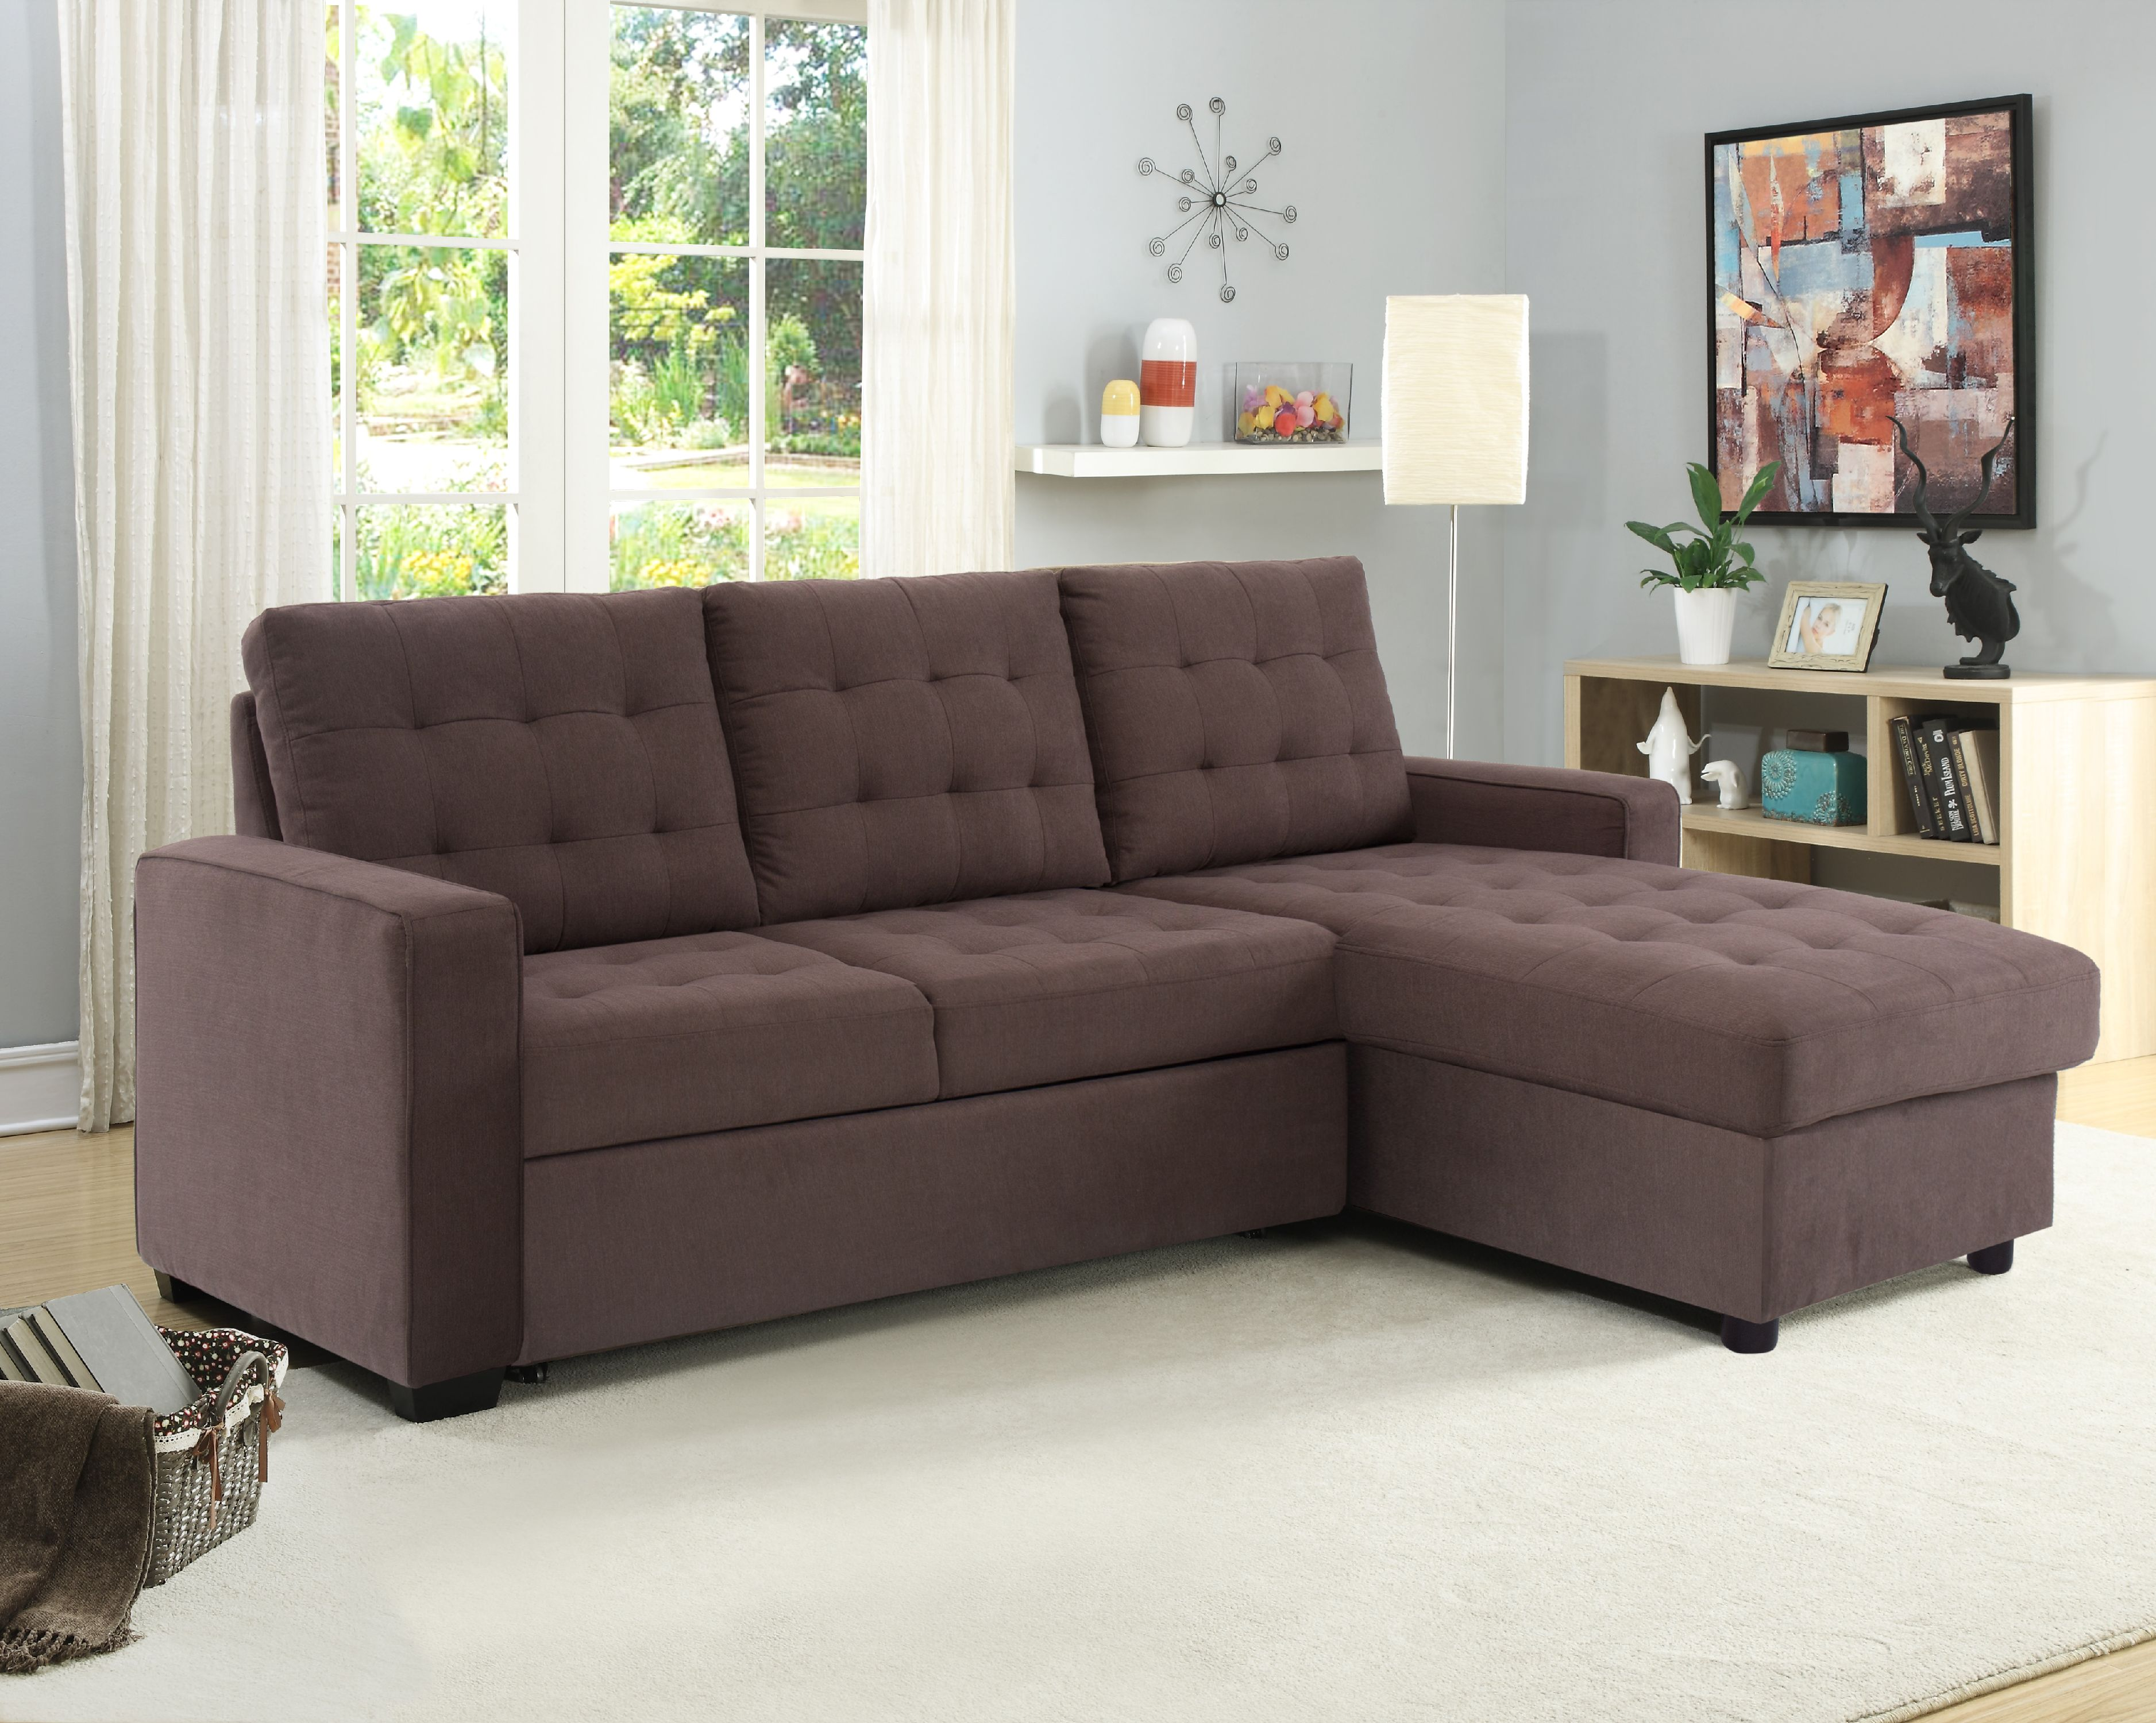 Couches Promotion Serta Bostal Sectional Sofa Convertible Converts Into A Sofa